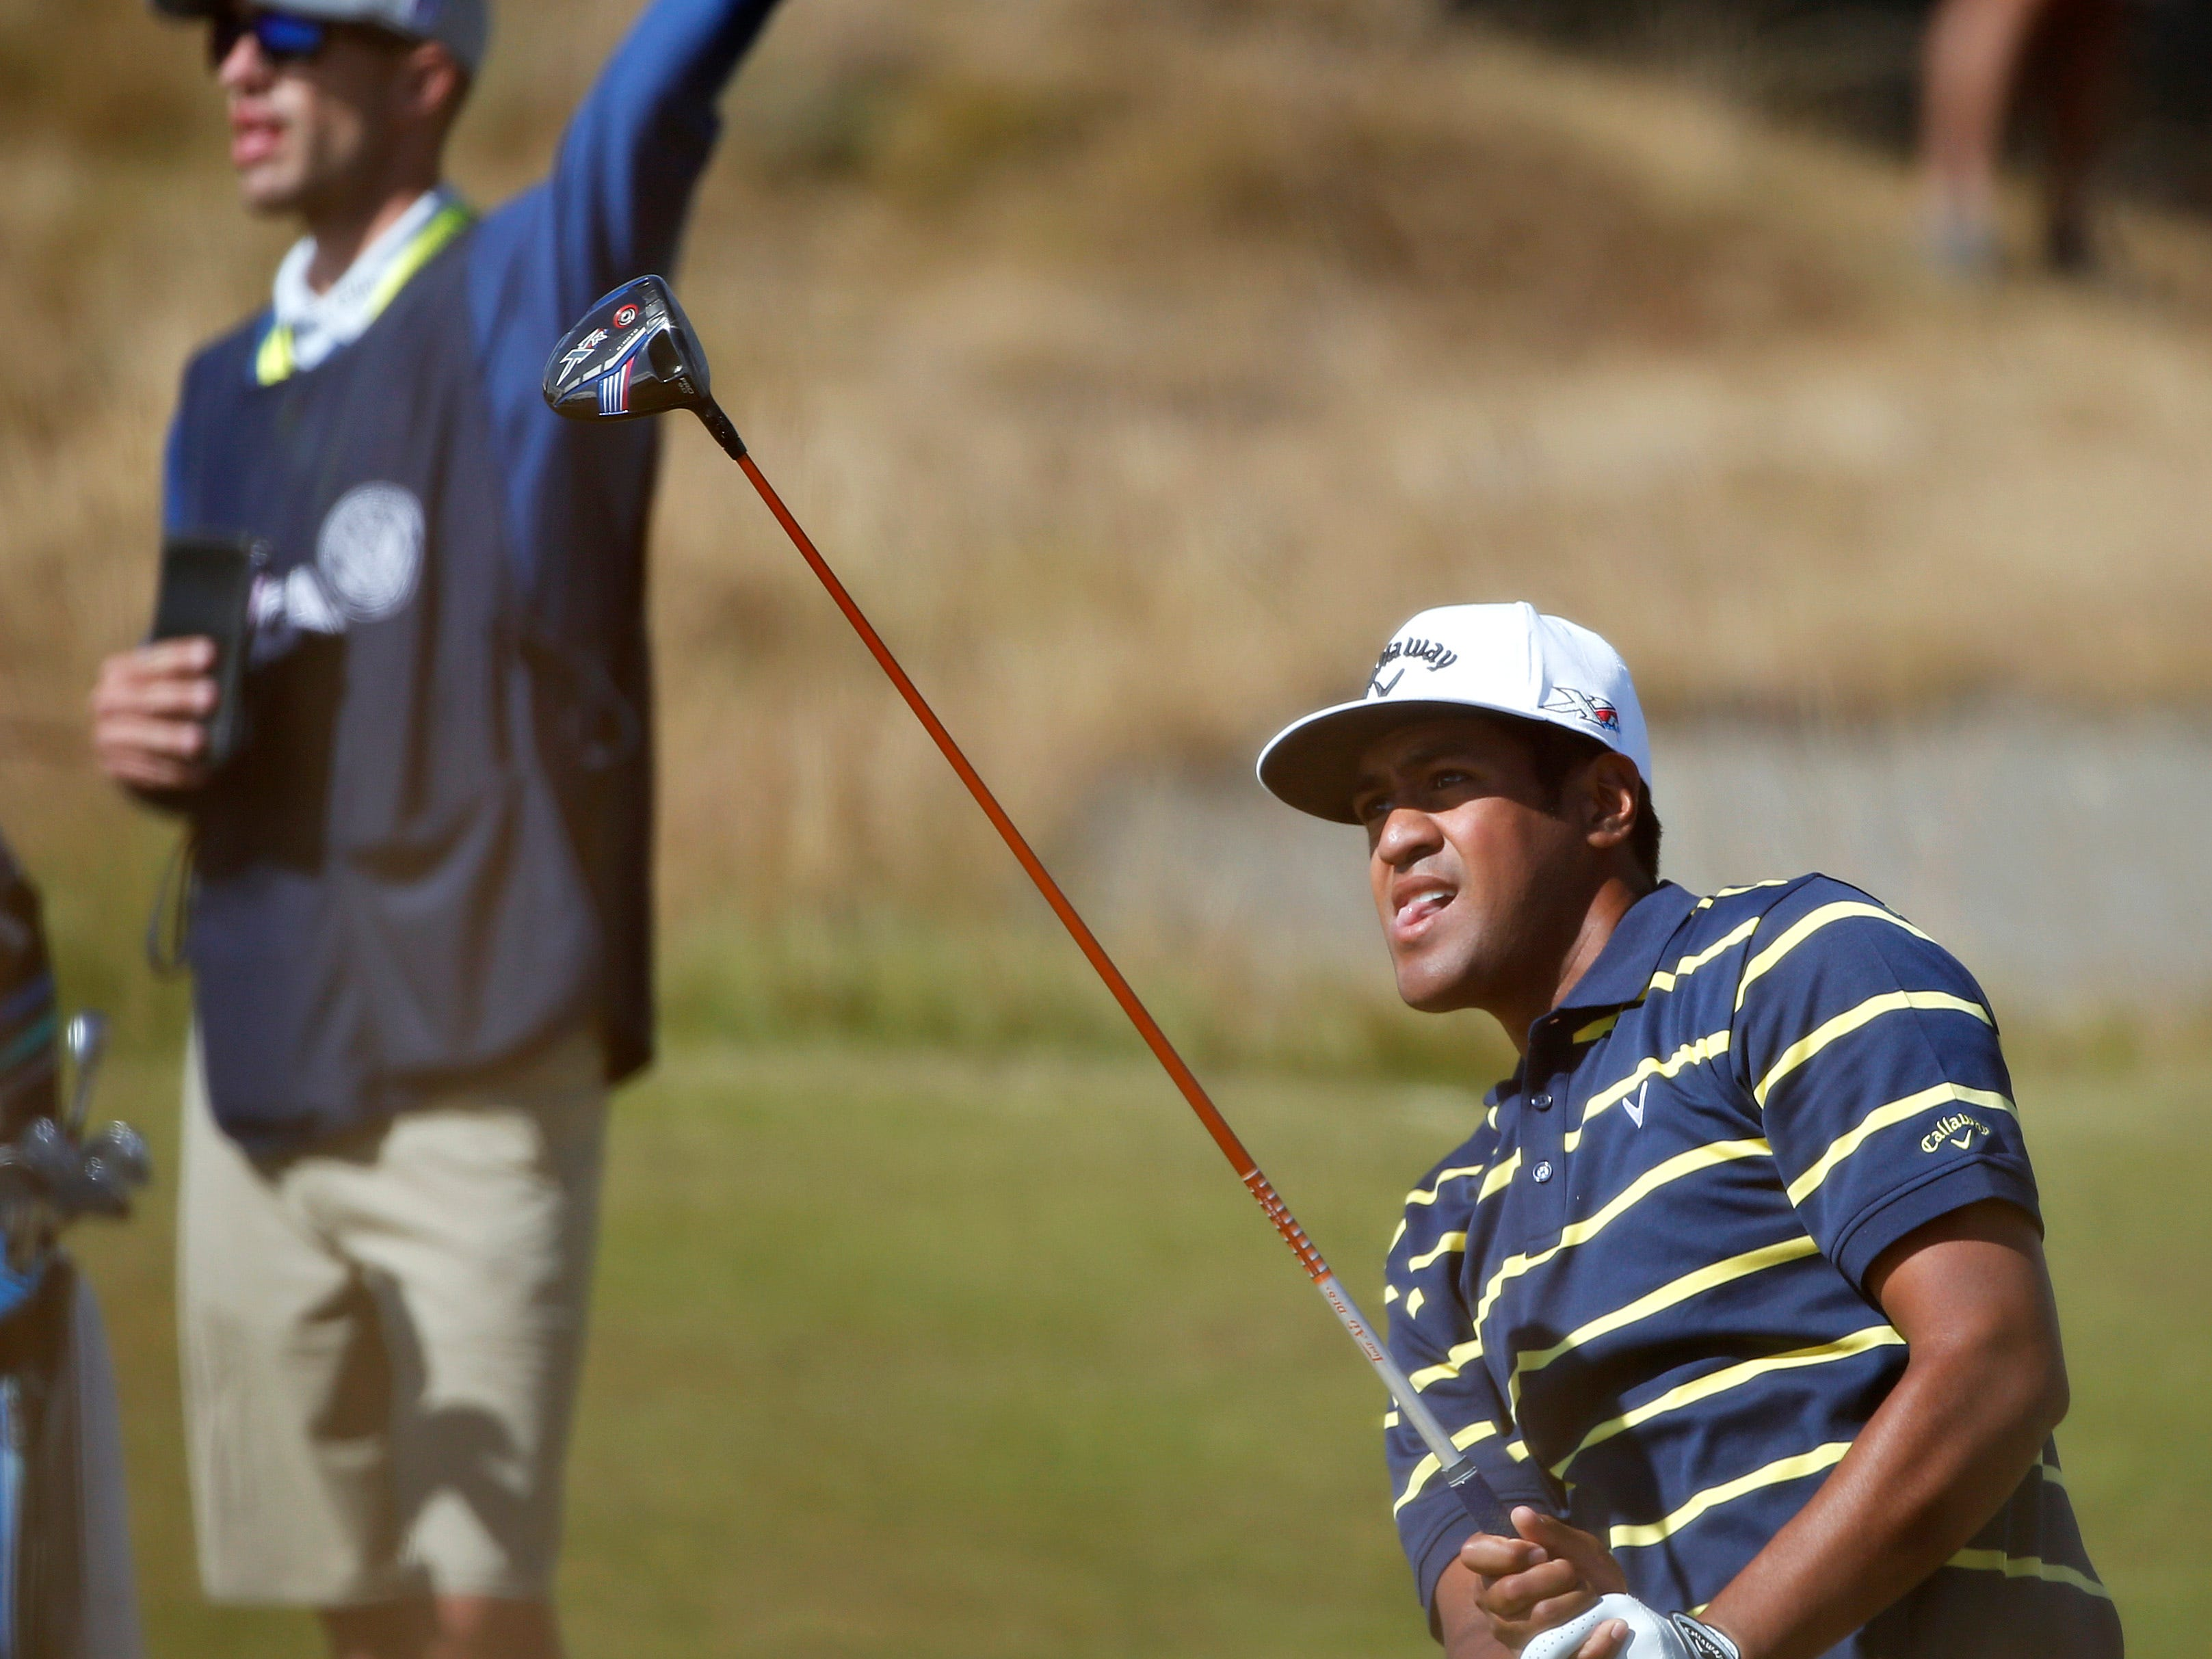 Tony Finau watches his tee shot on the 18th hole during the second round of the U.S. Open golf tournament at Chambers Bay on Friday, June 19, 2015 in University Place, Wash. (AP Photo/Lenny Ignelzi)